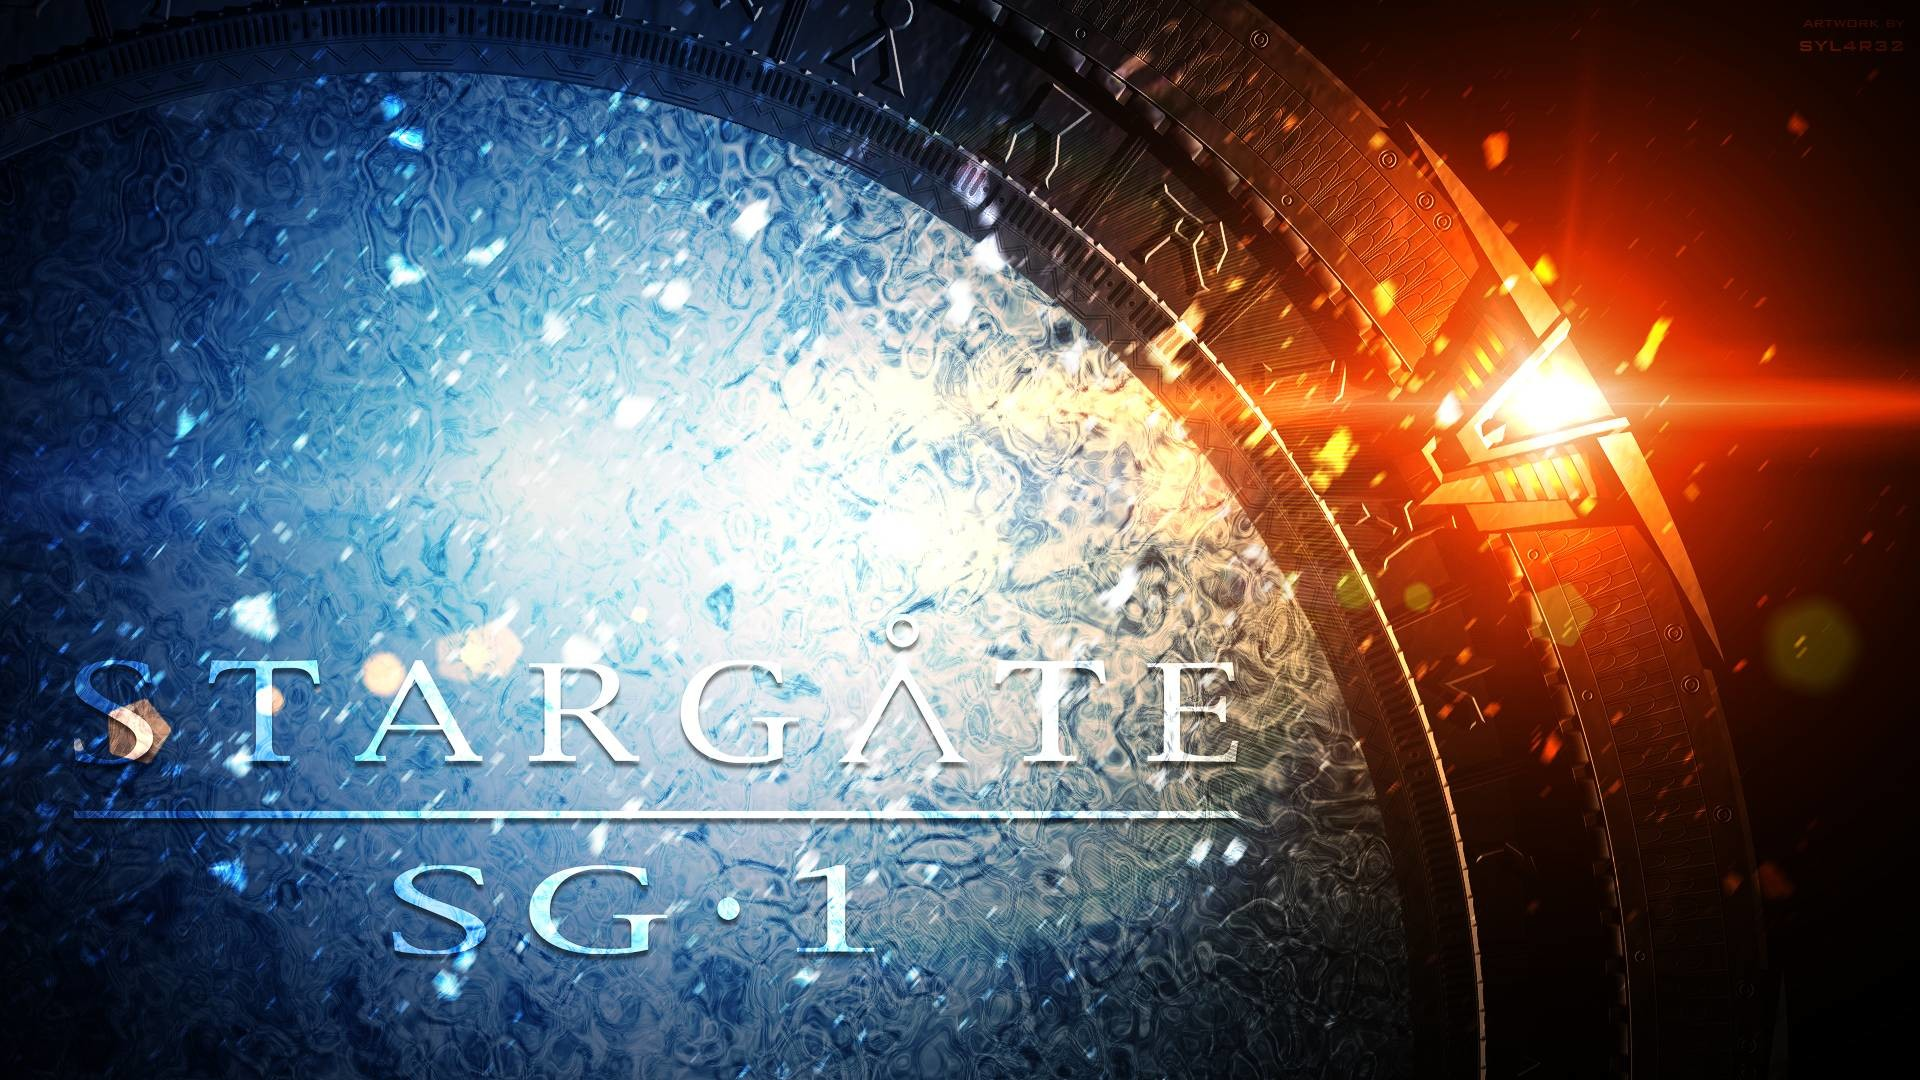 Stargate Sg1 Wallpaper the best 67 images in 2018 1920x1080